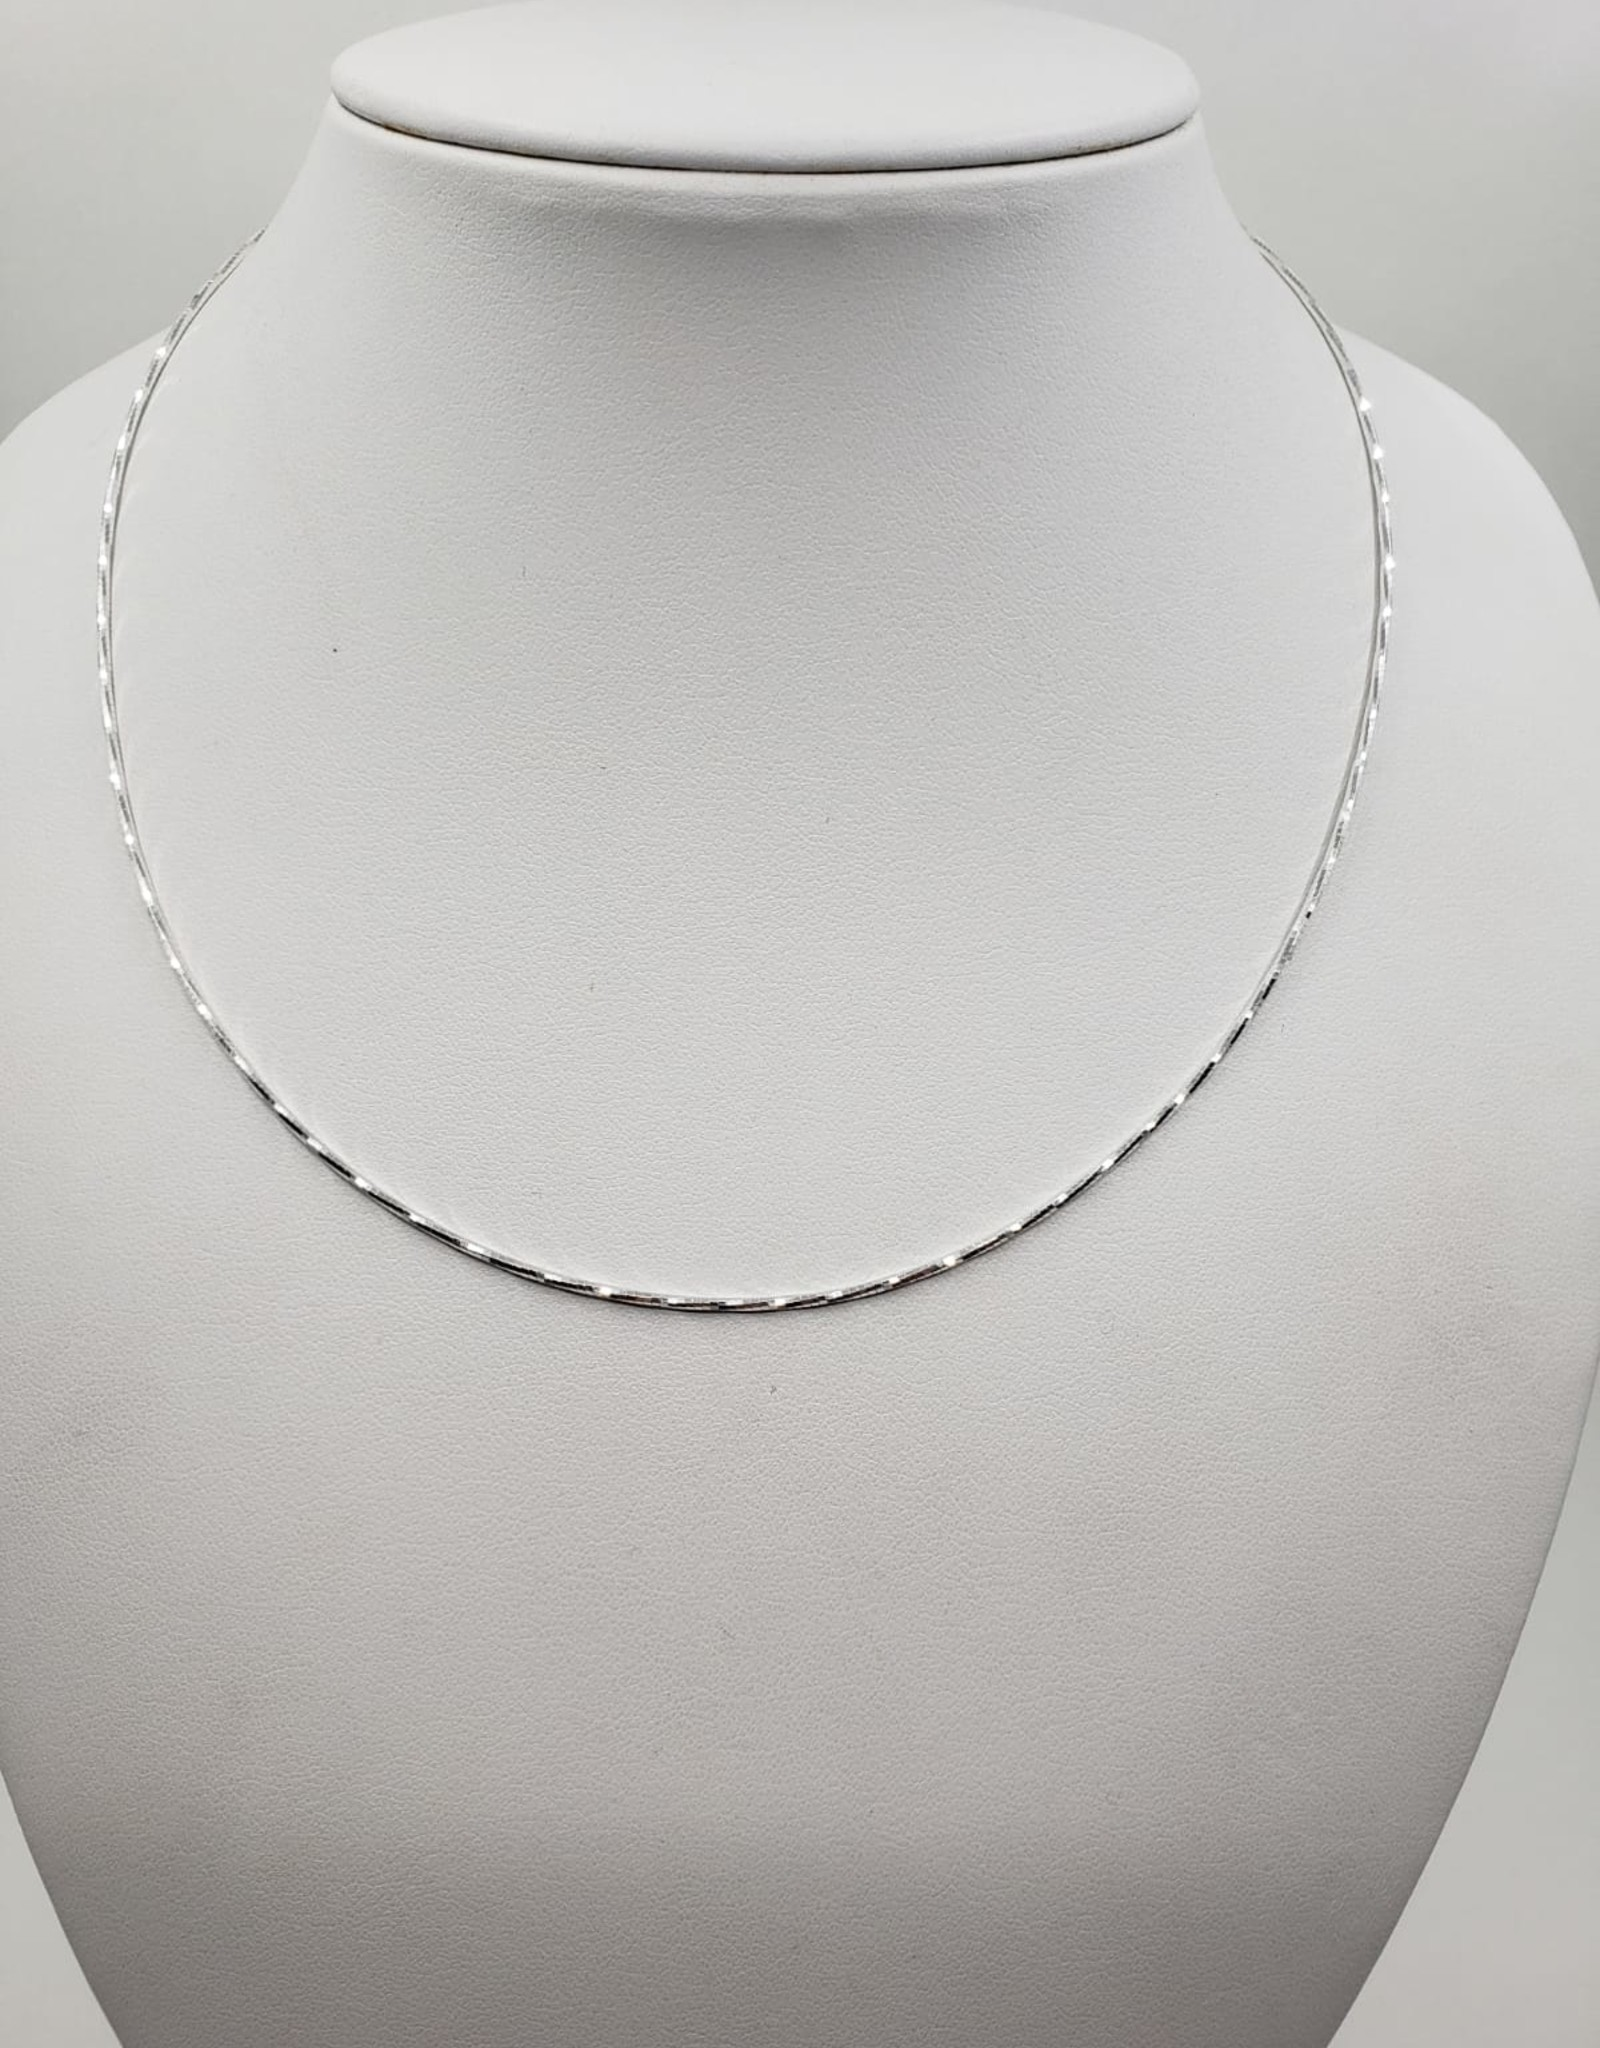 sparkle silver snake chain necklace 16""